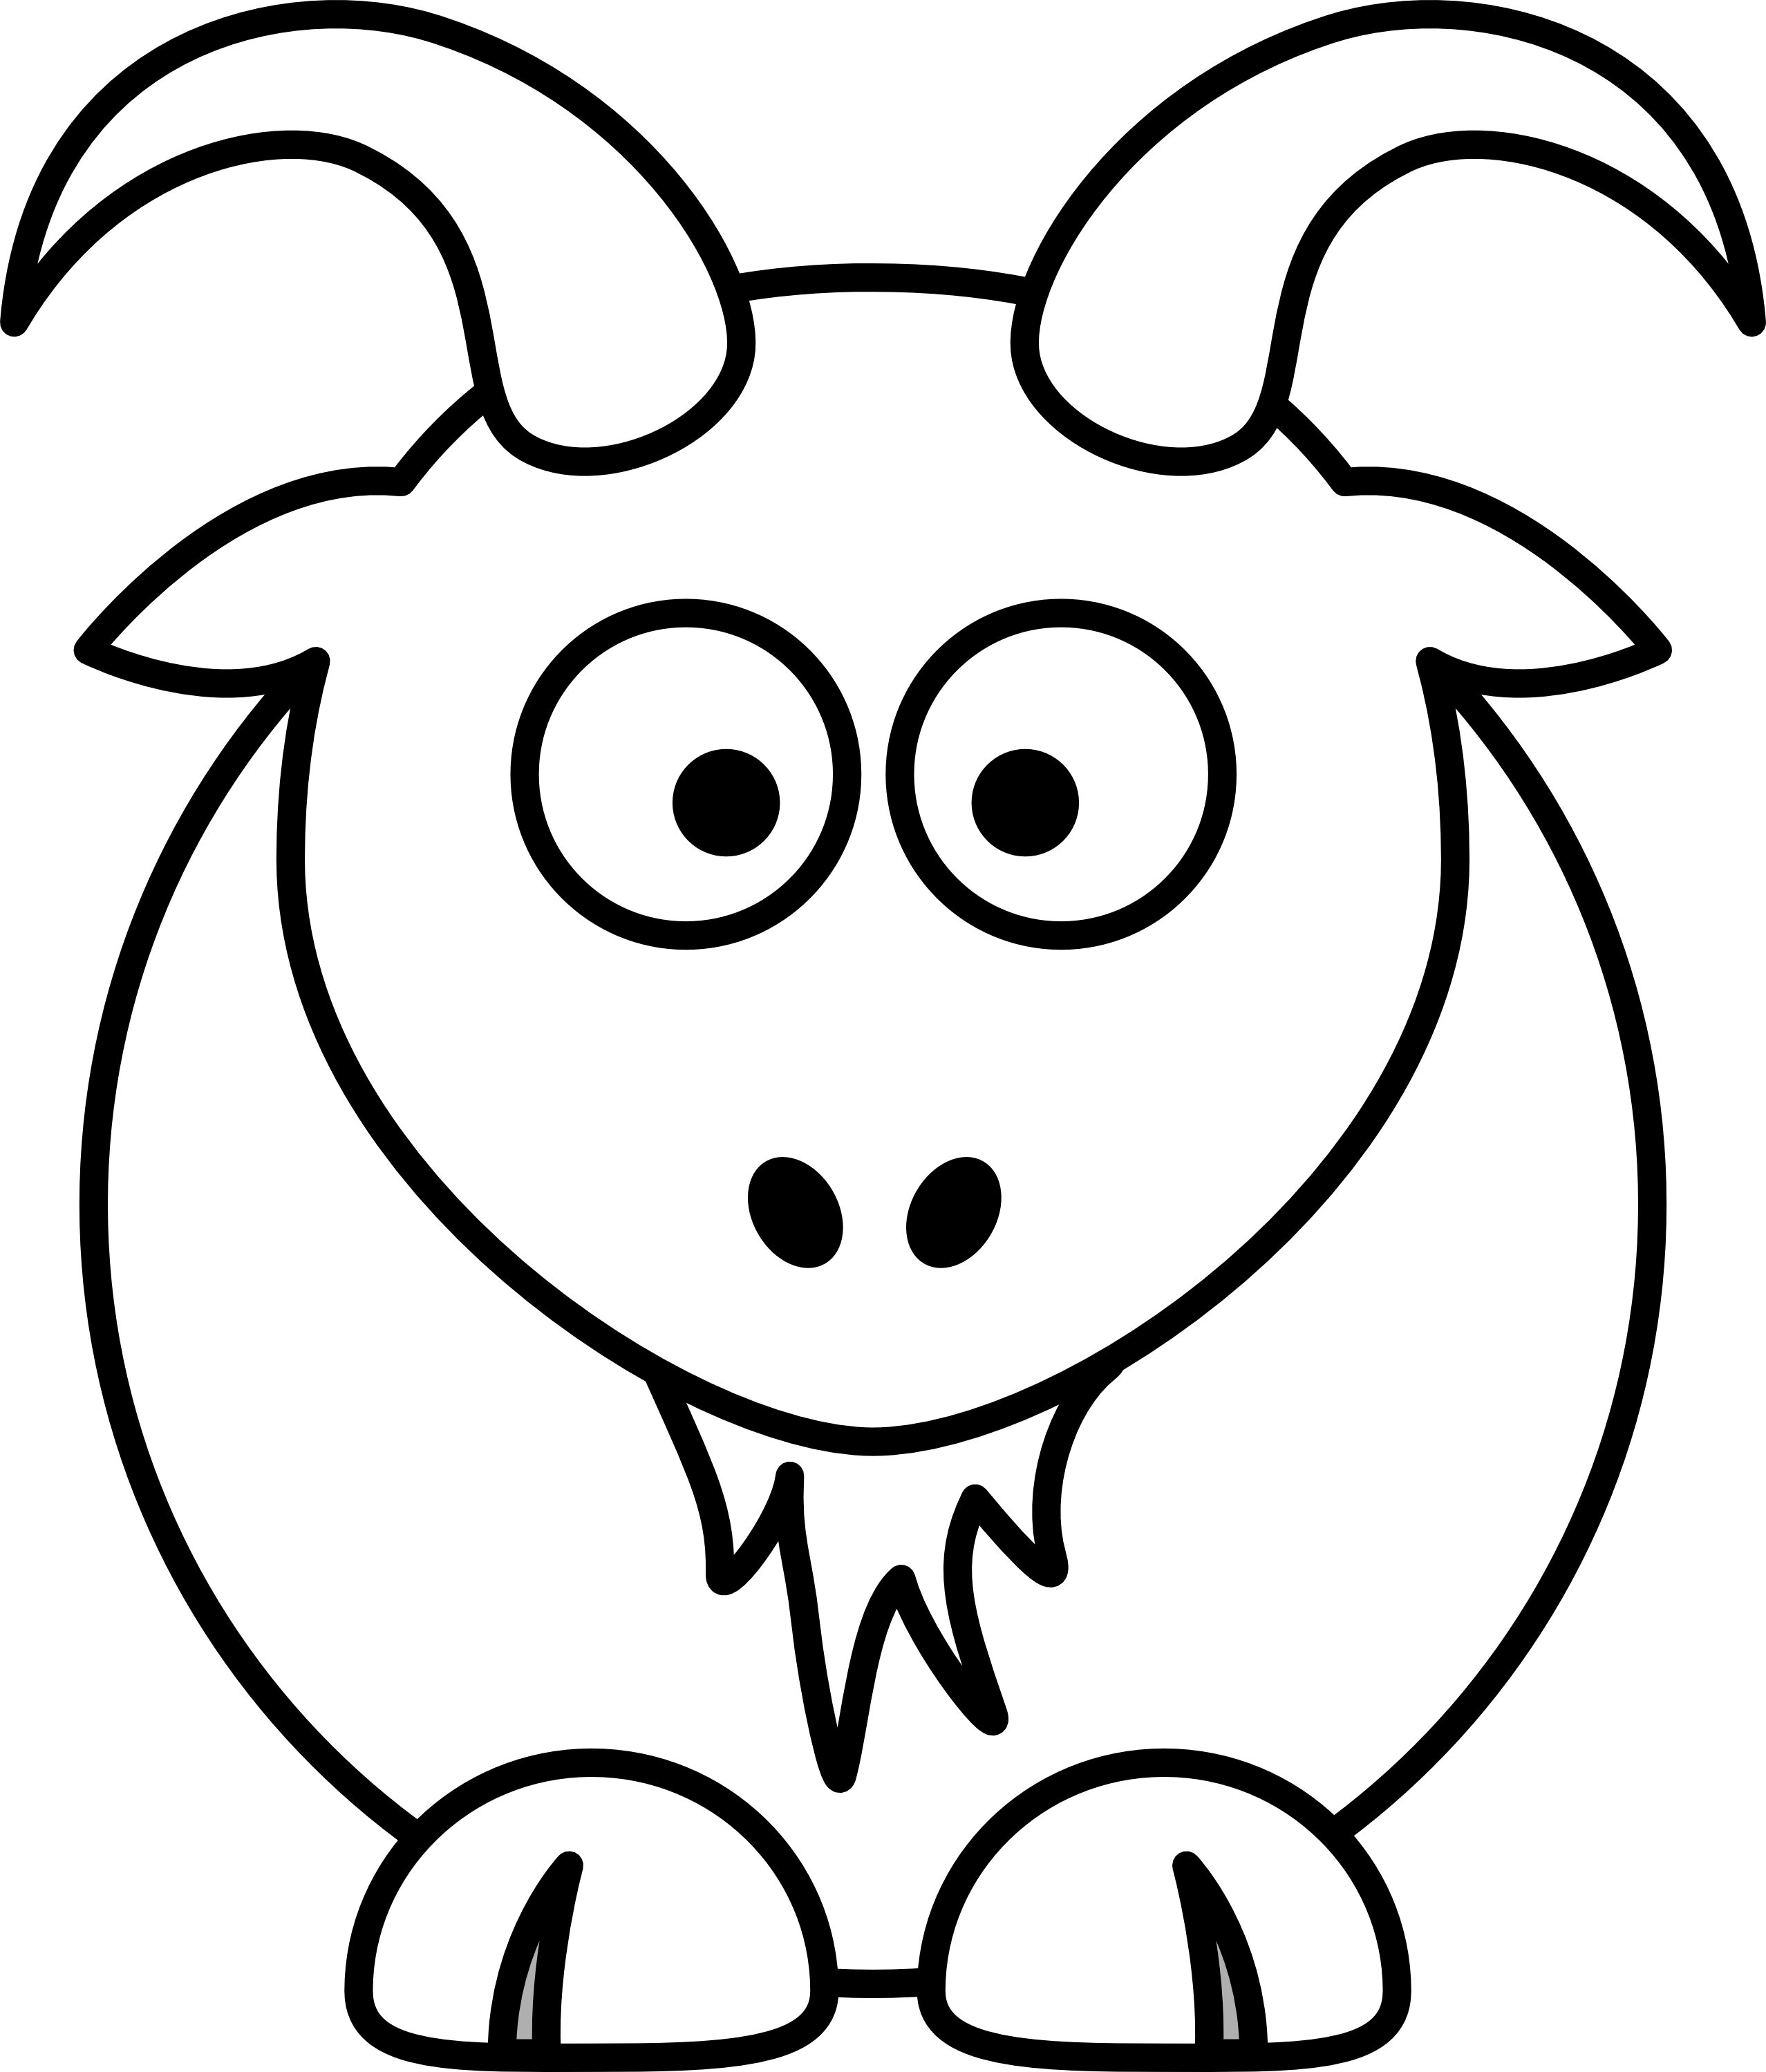 2555x2998 Sheep Black And White Goat Sheep Clipart Black And White Free